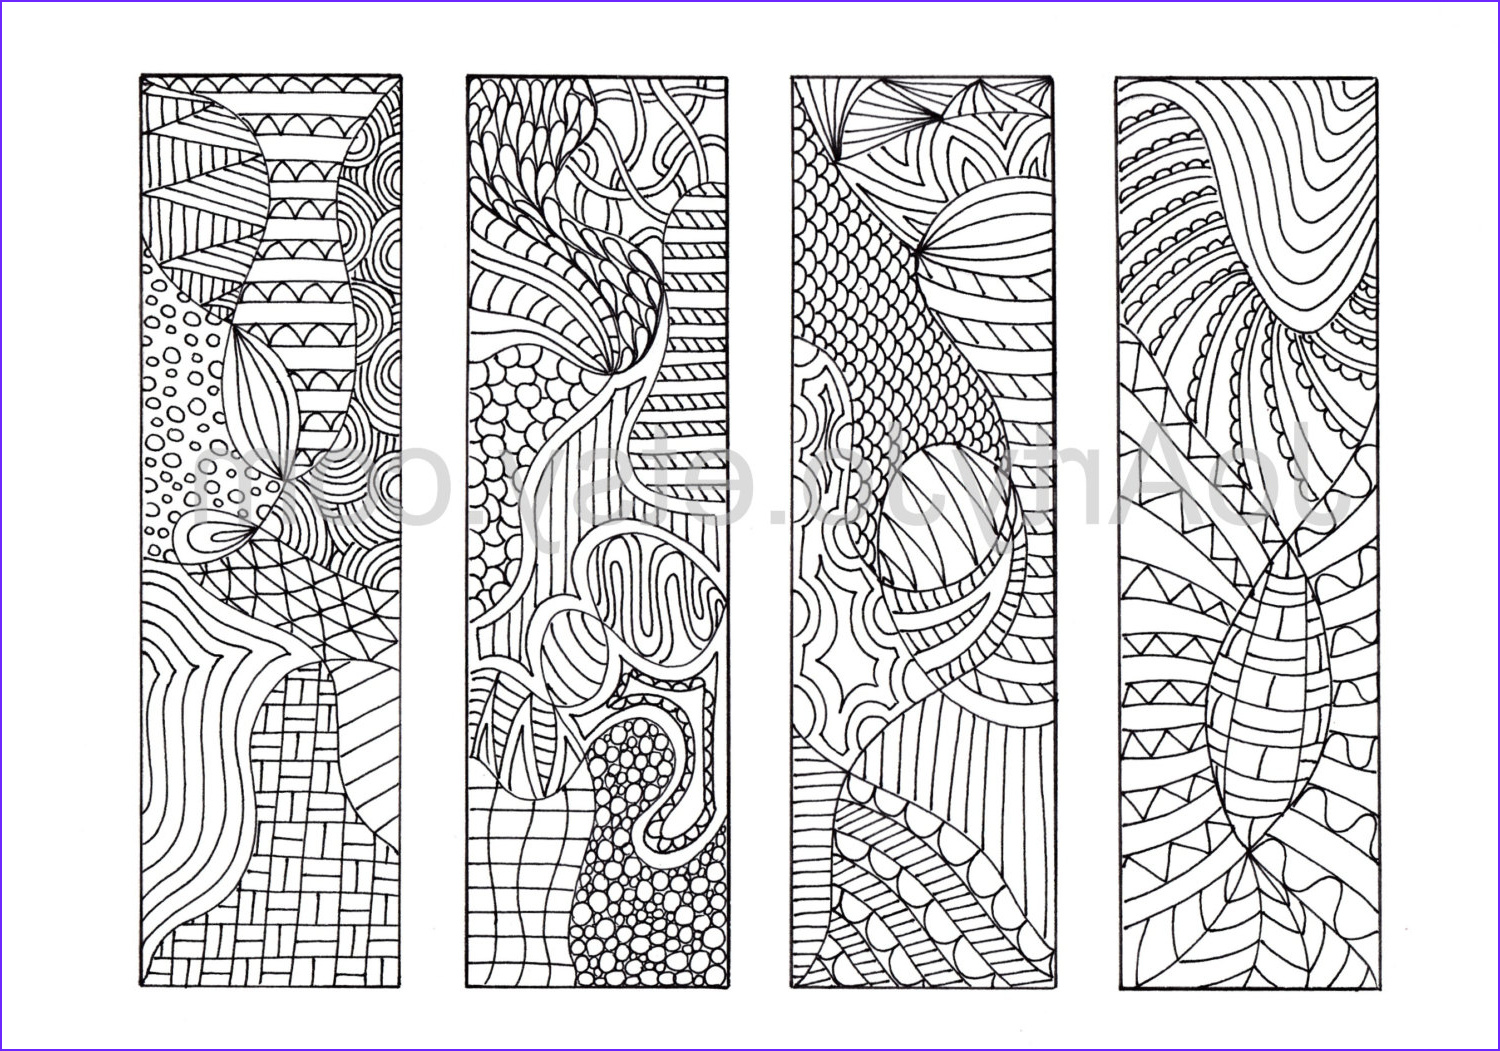 Coloring Book Markers Best Of Photography Coloring Bookmarks to Print 12 Zentangle Inspired Printable